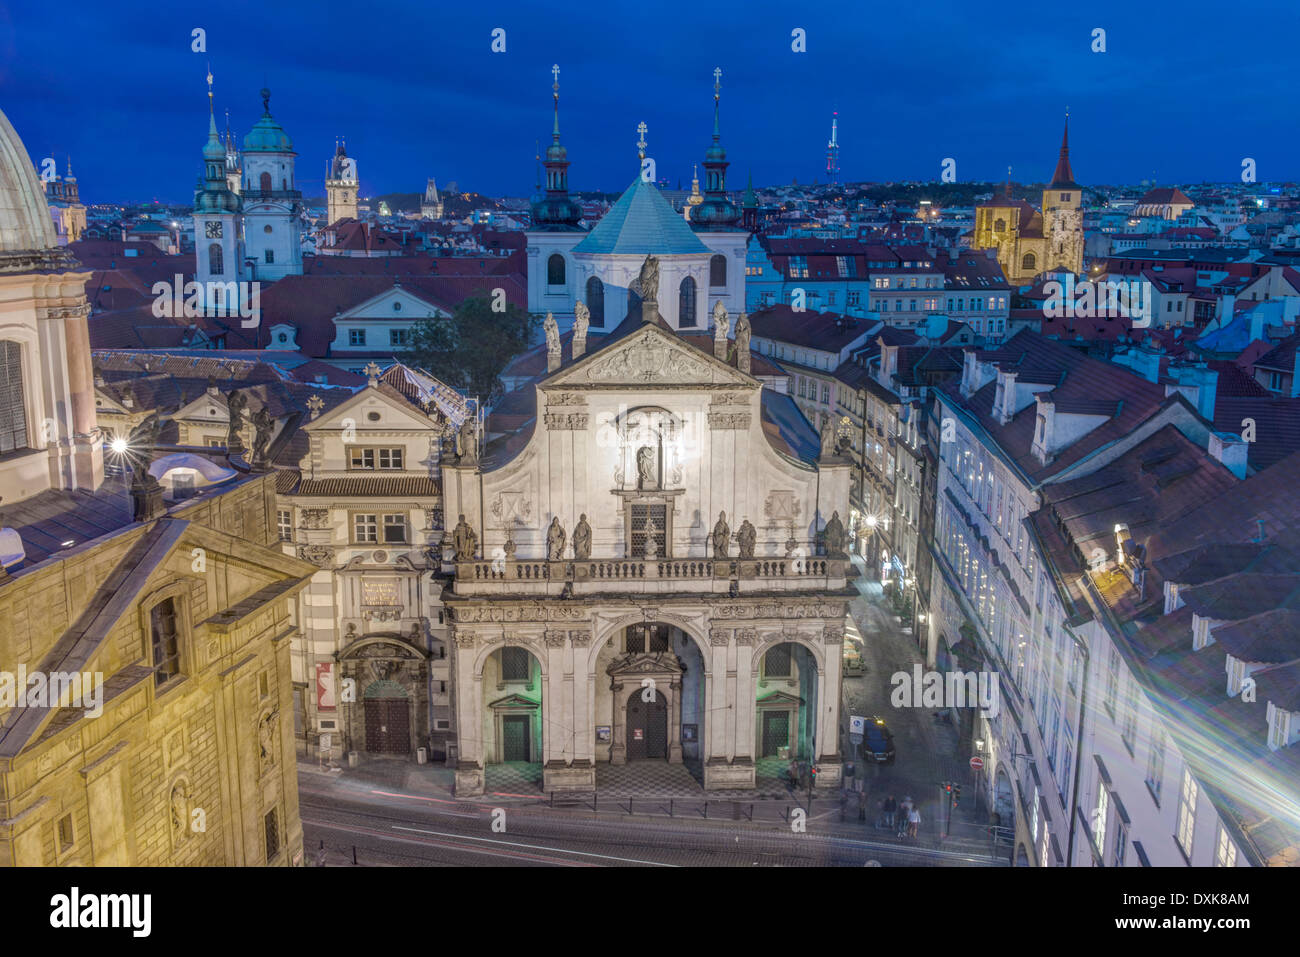 Historic building in the Clemintinium, Prague, Central Bohemia, Czech Republic - Stock Image